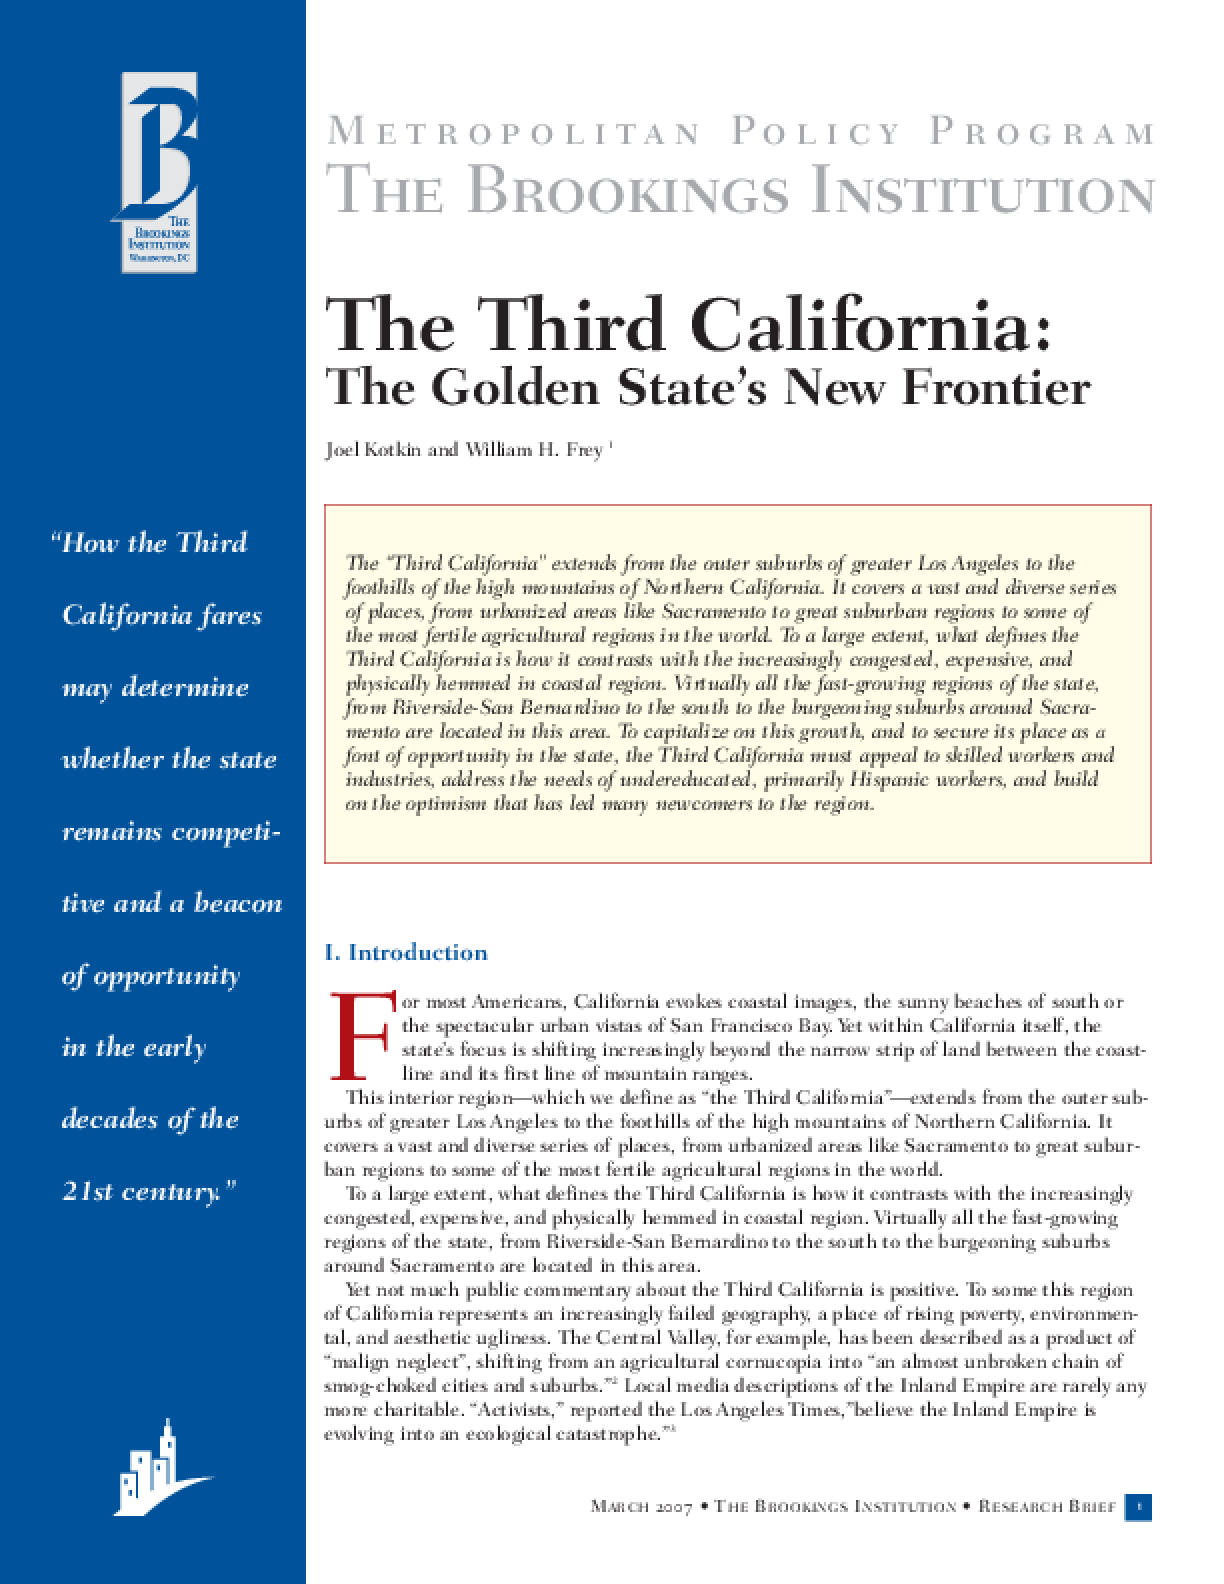 The Third California: The Golden State's New Frontier